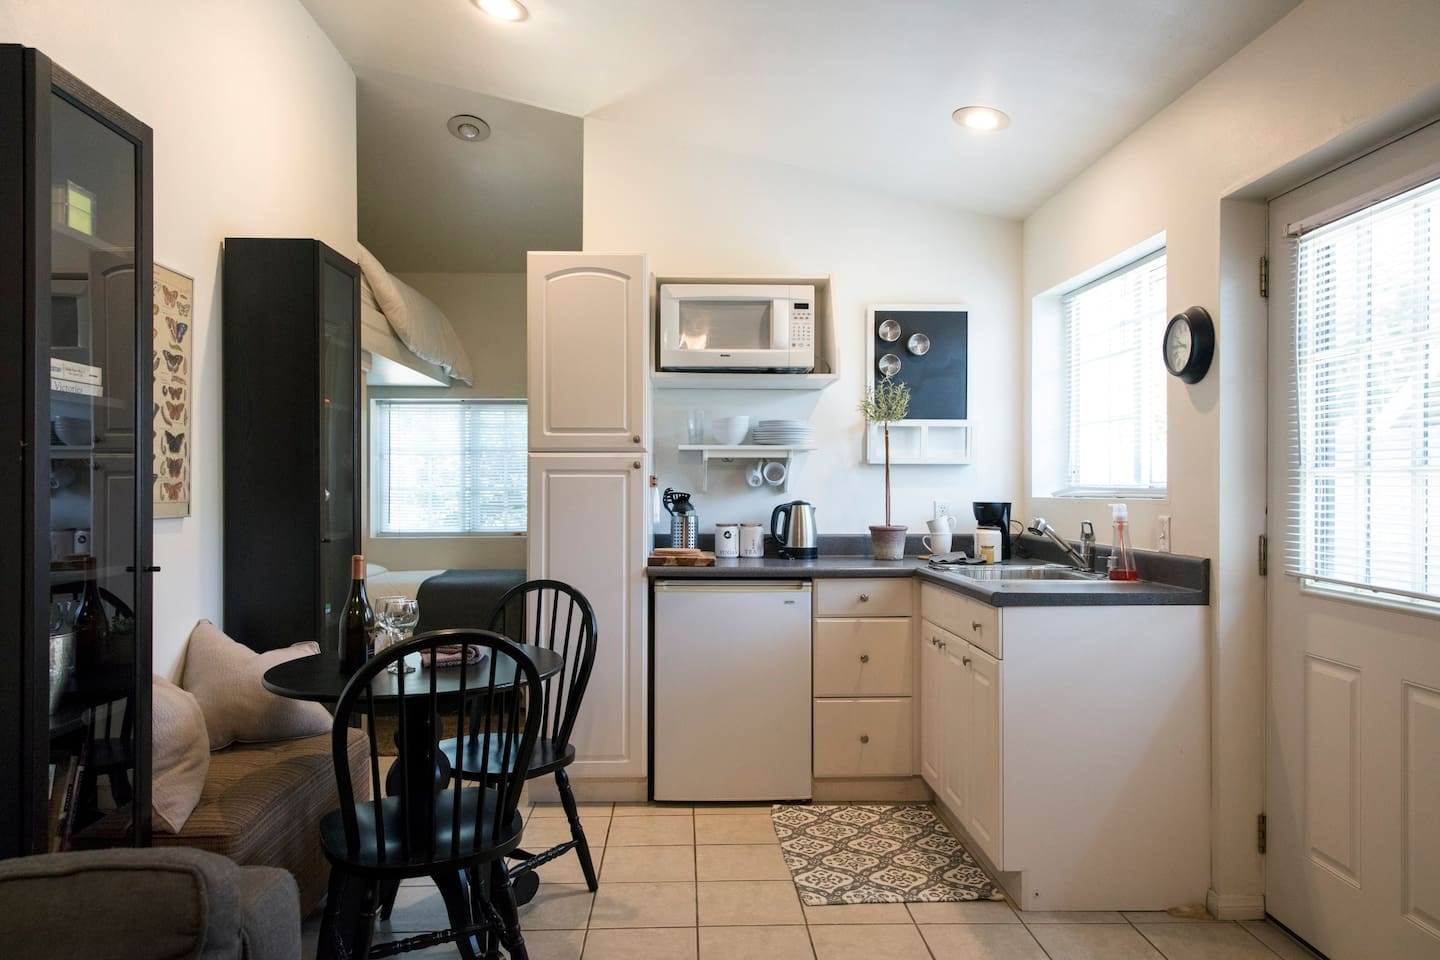 Parker Guest Studio.  Private entrance with living room, kitchenette, bathroom, with lofted queen and single bed, including designated single parking space.